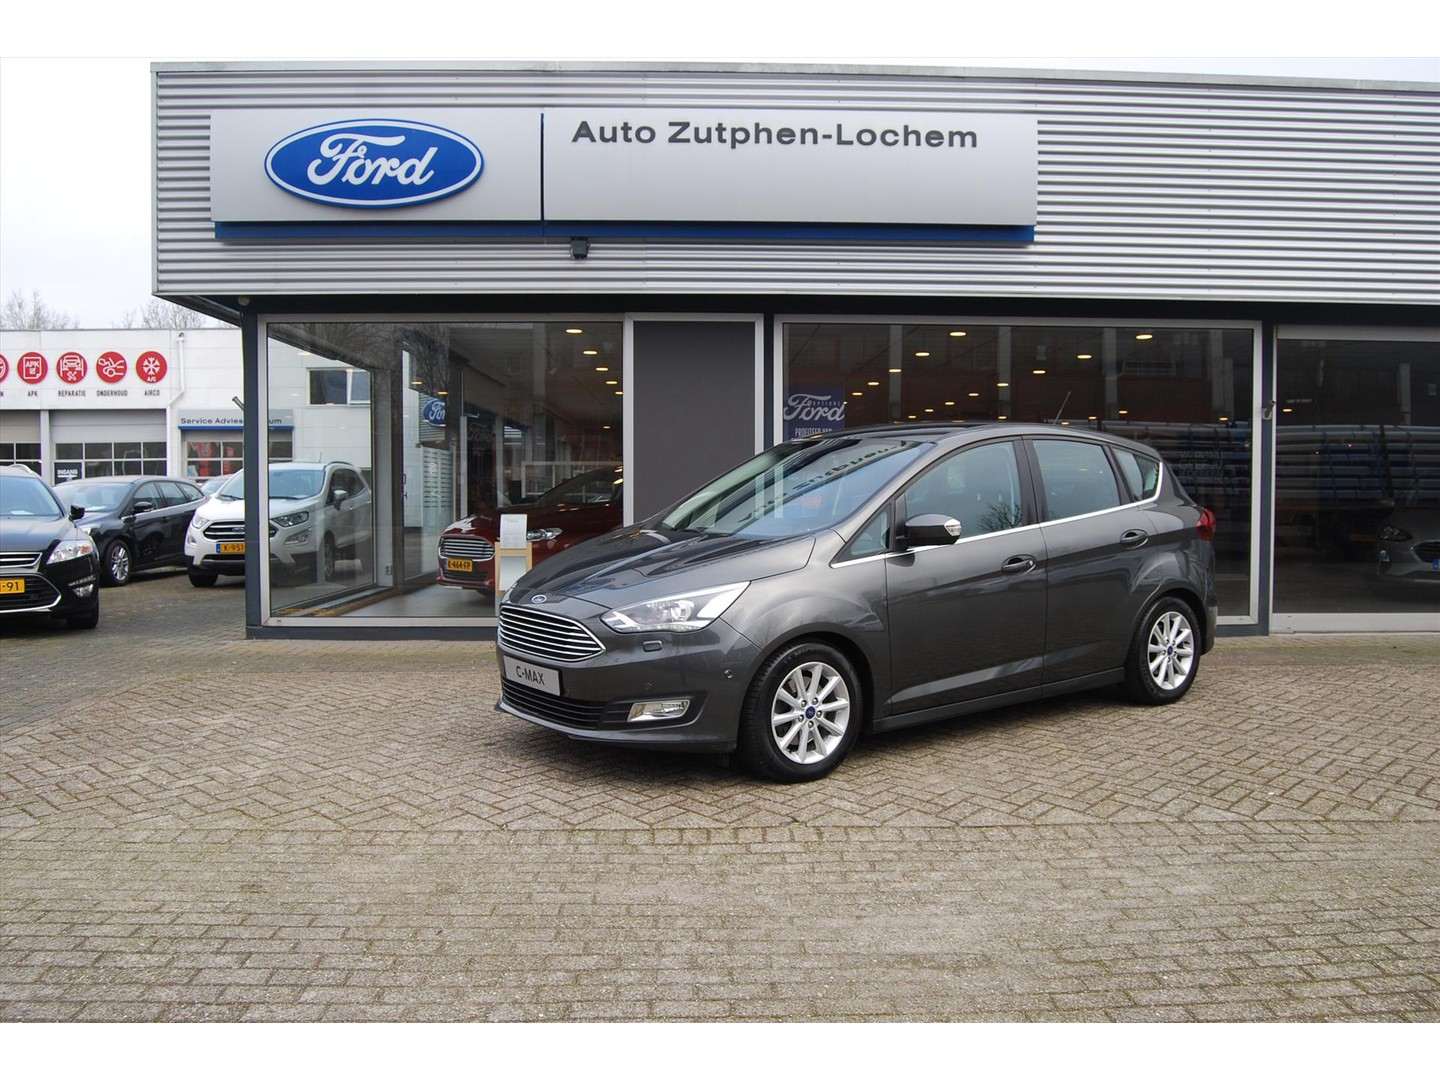 Ford C-max 1.5 ecoboost 150pk automaat